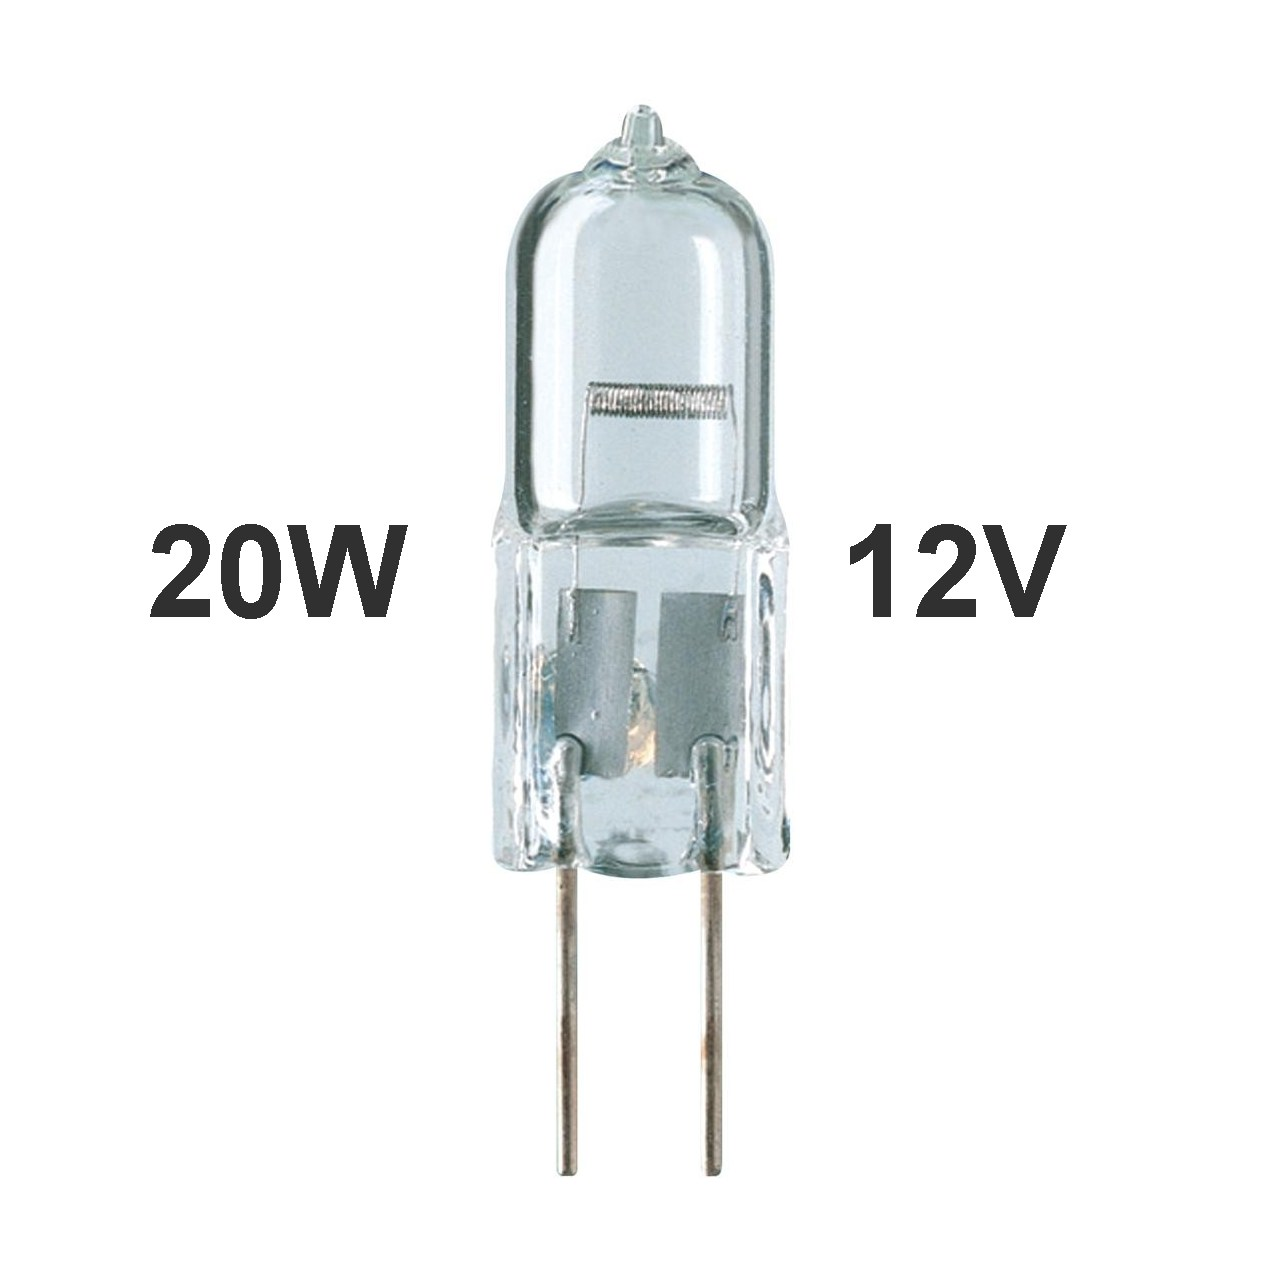 Brizzo Lighting Stores 20W Halogen G4 Bi Pin Bulb 12V Low